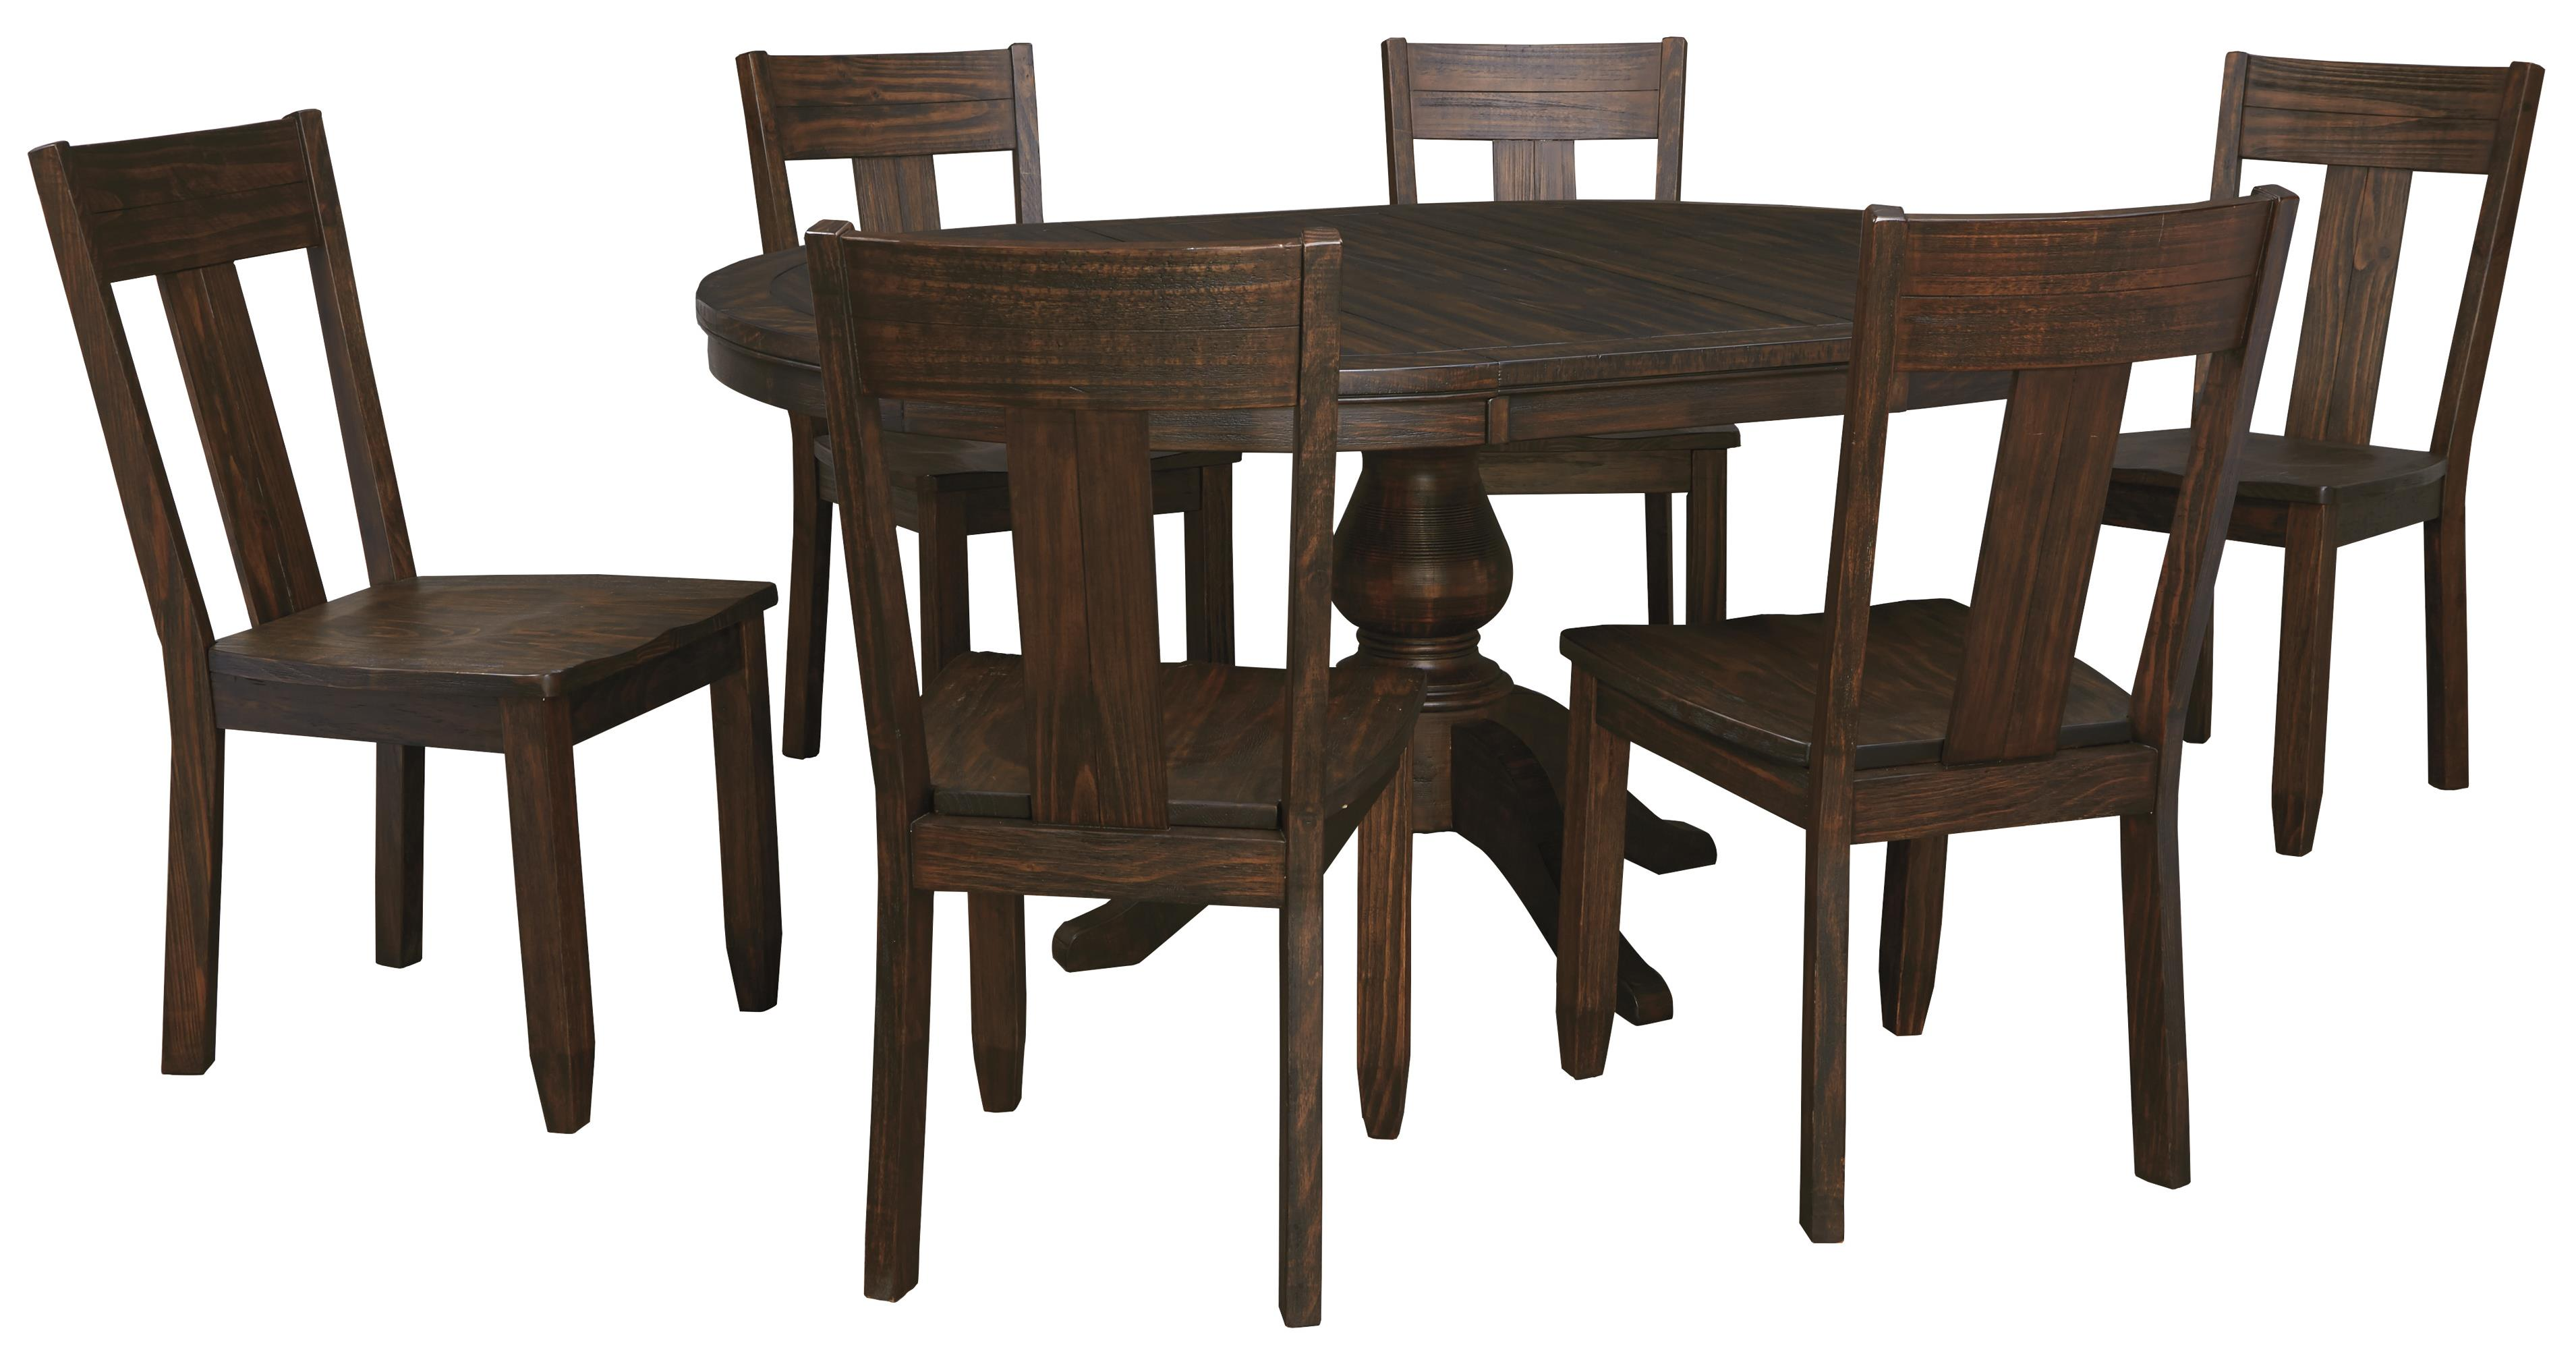 7 piece oval dining table set with wood seat side chairs for 7 piece dining set with bench